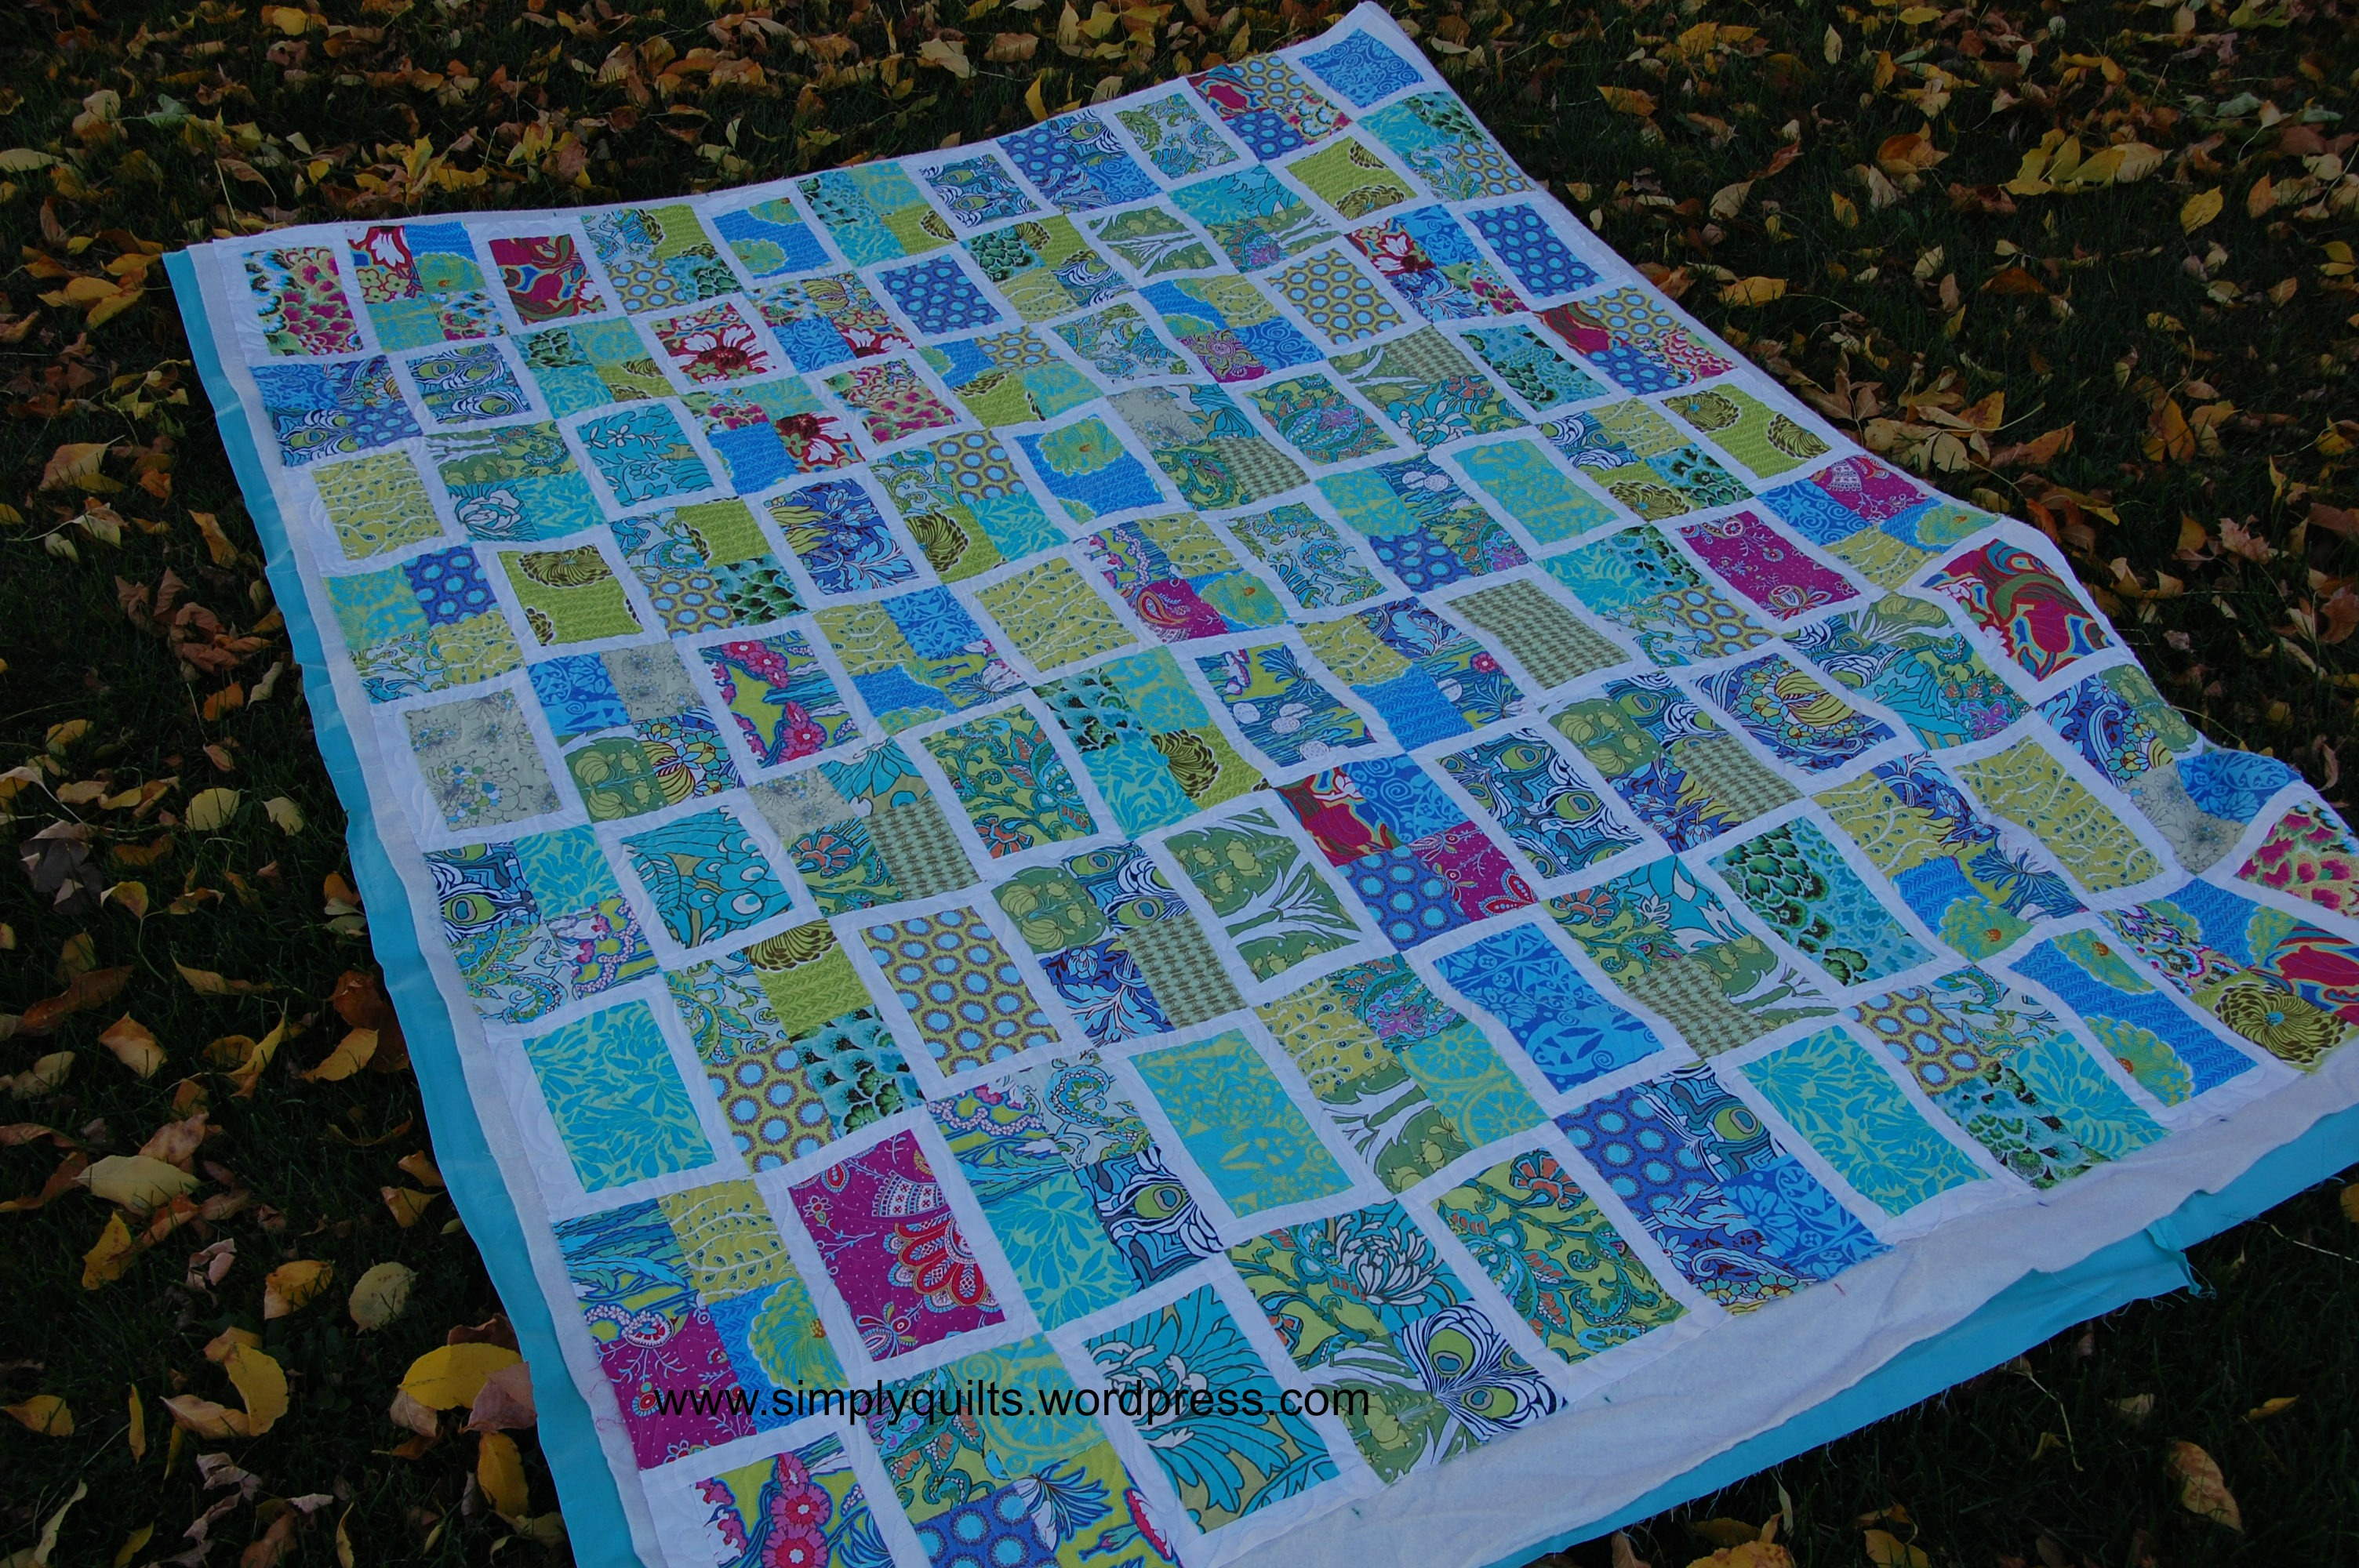 Simply Quilts | Quilts and Custom Quilting